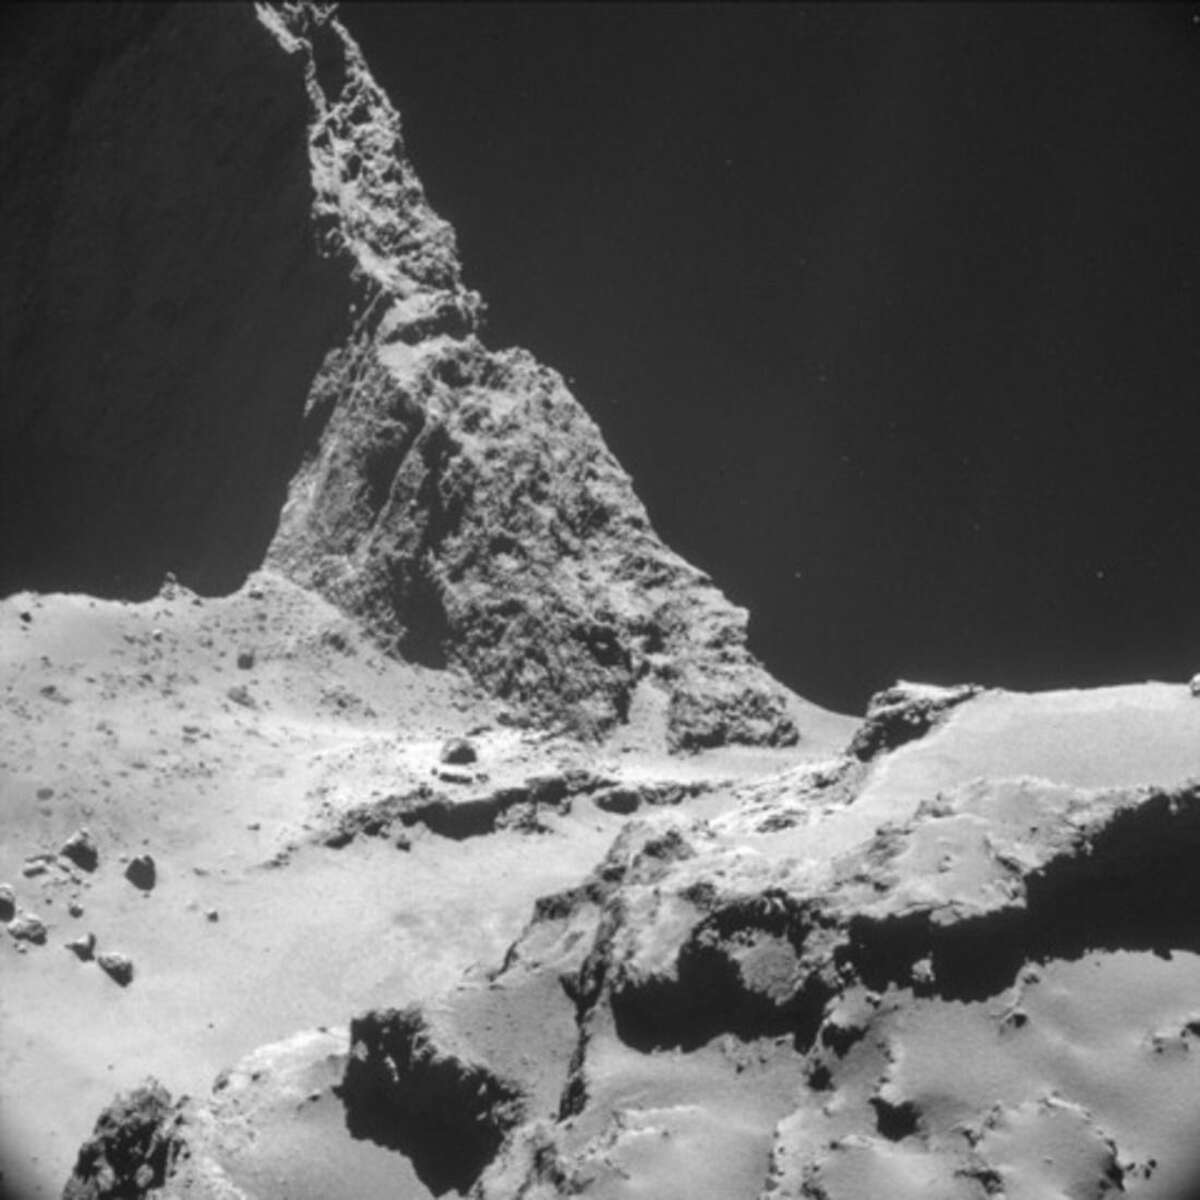 The picture taken with the navigation camera on Rosetta and released by the European Space Agency ESA shows the boulder-strewn neck region of Comet 67P/Churyumov-Gerasimenko, with the smaller lobe on the left and the larger lobe on the right. It was captured from a distance of 9.7 km from the center of the comet (about 7.7 km / 4.8 miles) from the surface) on Oct. 28, 2014. On Wednesday, Nov. 12, 2014 the Philae lander will be detached from Rosetta to land on the comet. (AP Photo/ESA)